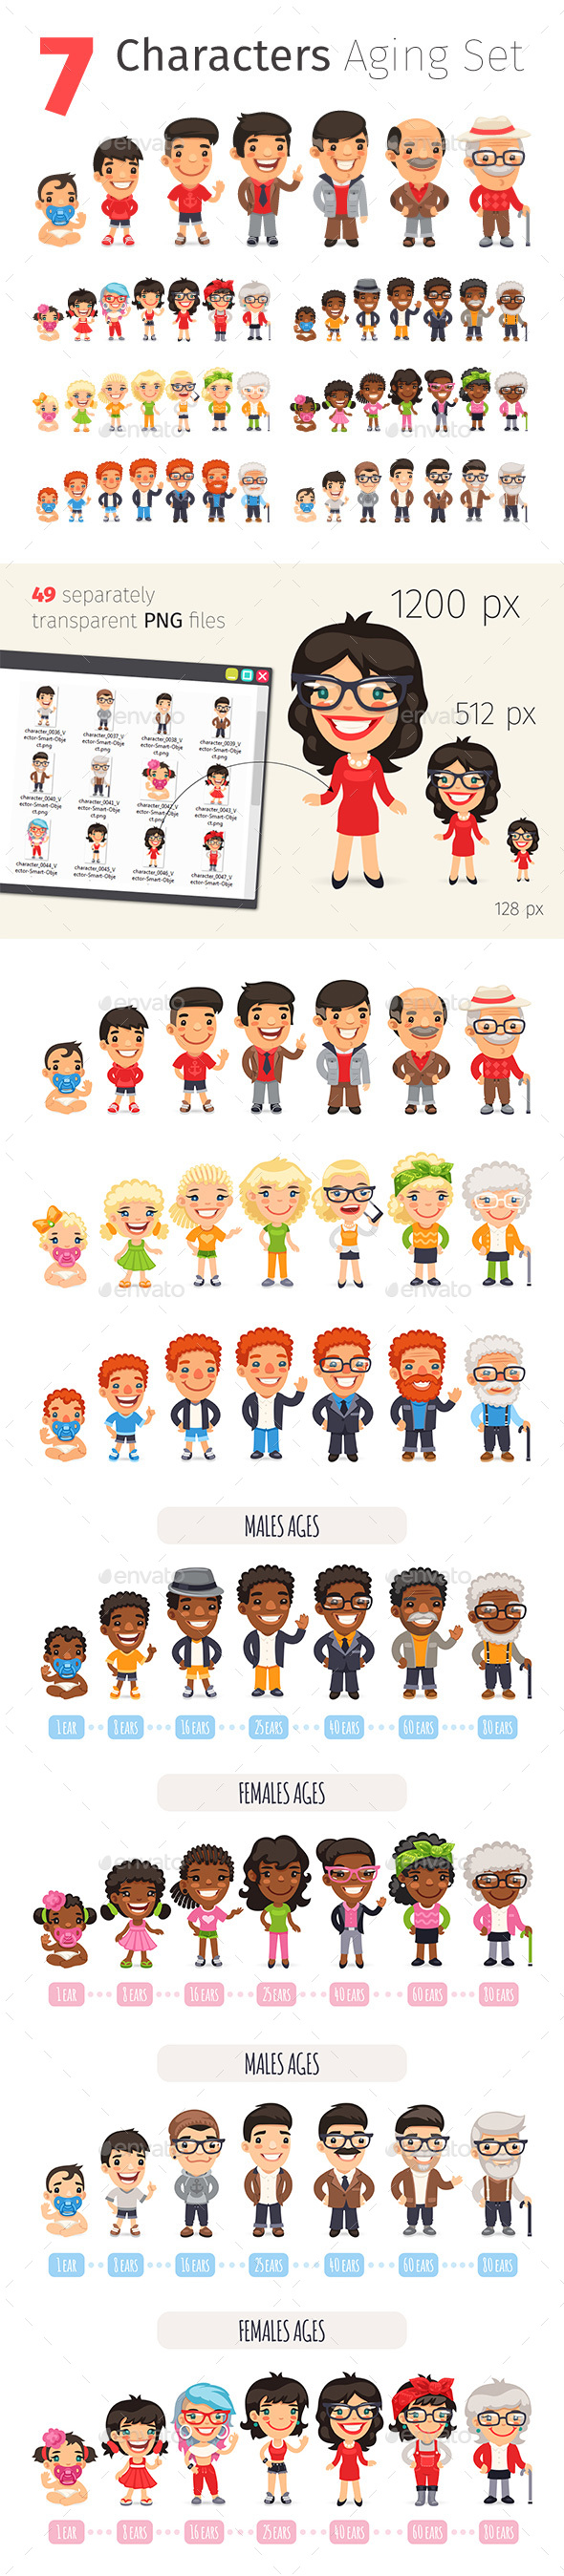 Seven Characters Aging Set